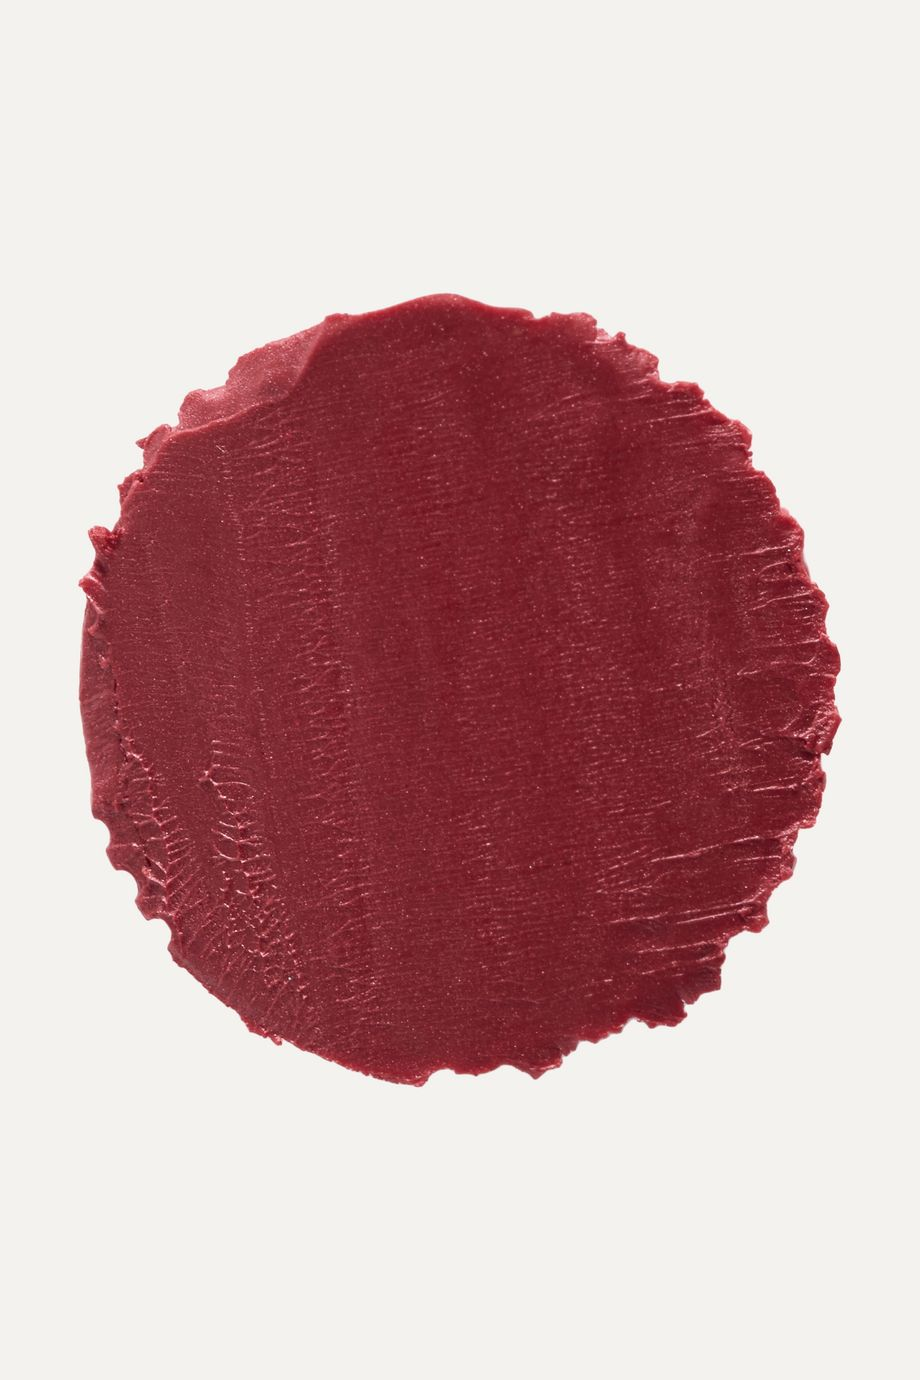 Burberry Beauty Burberry Kisses - Union Red No.113